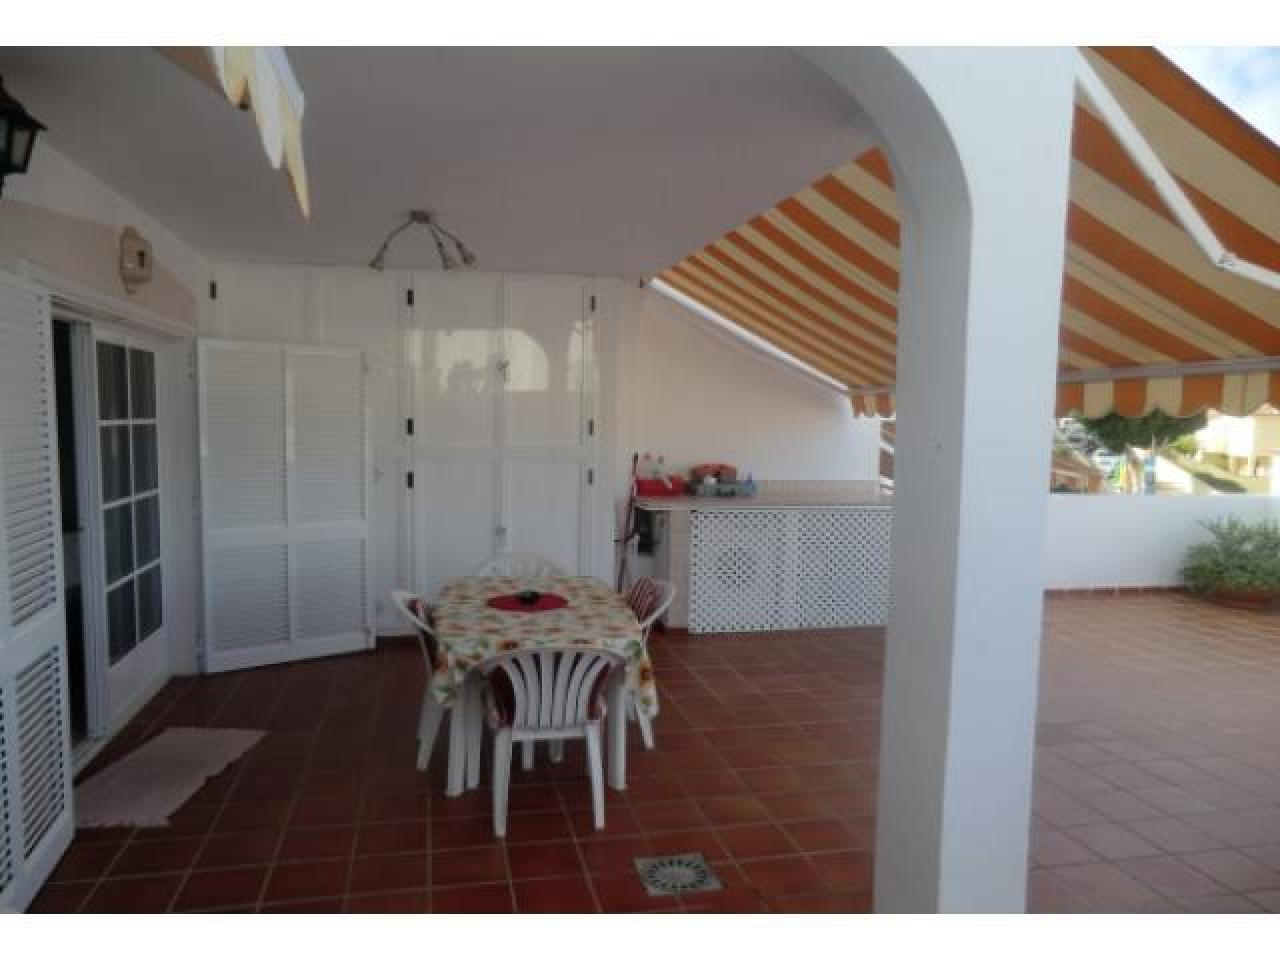 Real estate in Tenerife for sale » #99 - 2